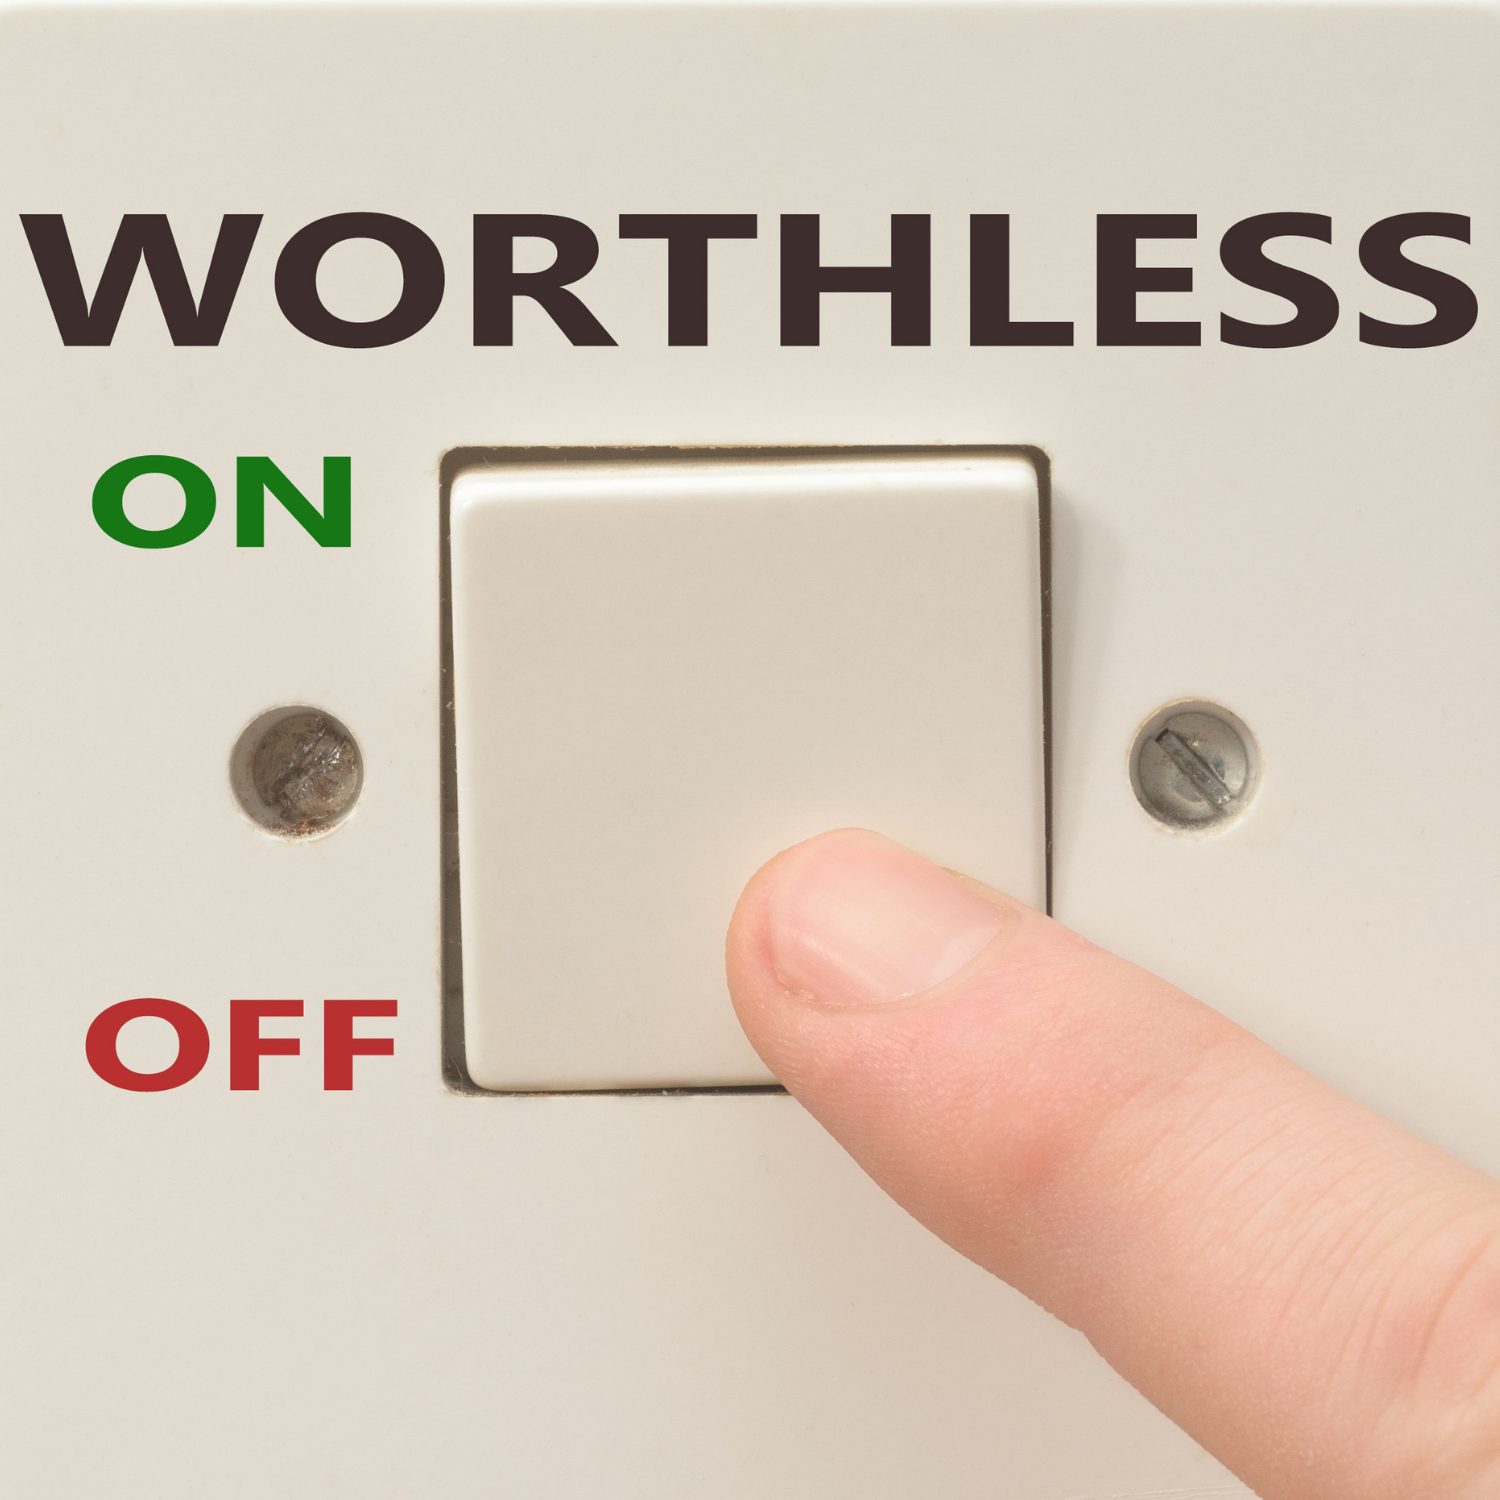 5 Things You Should Do If You're Feeling Worthless